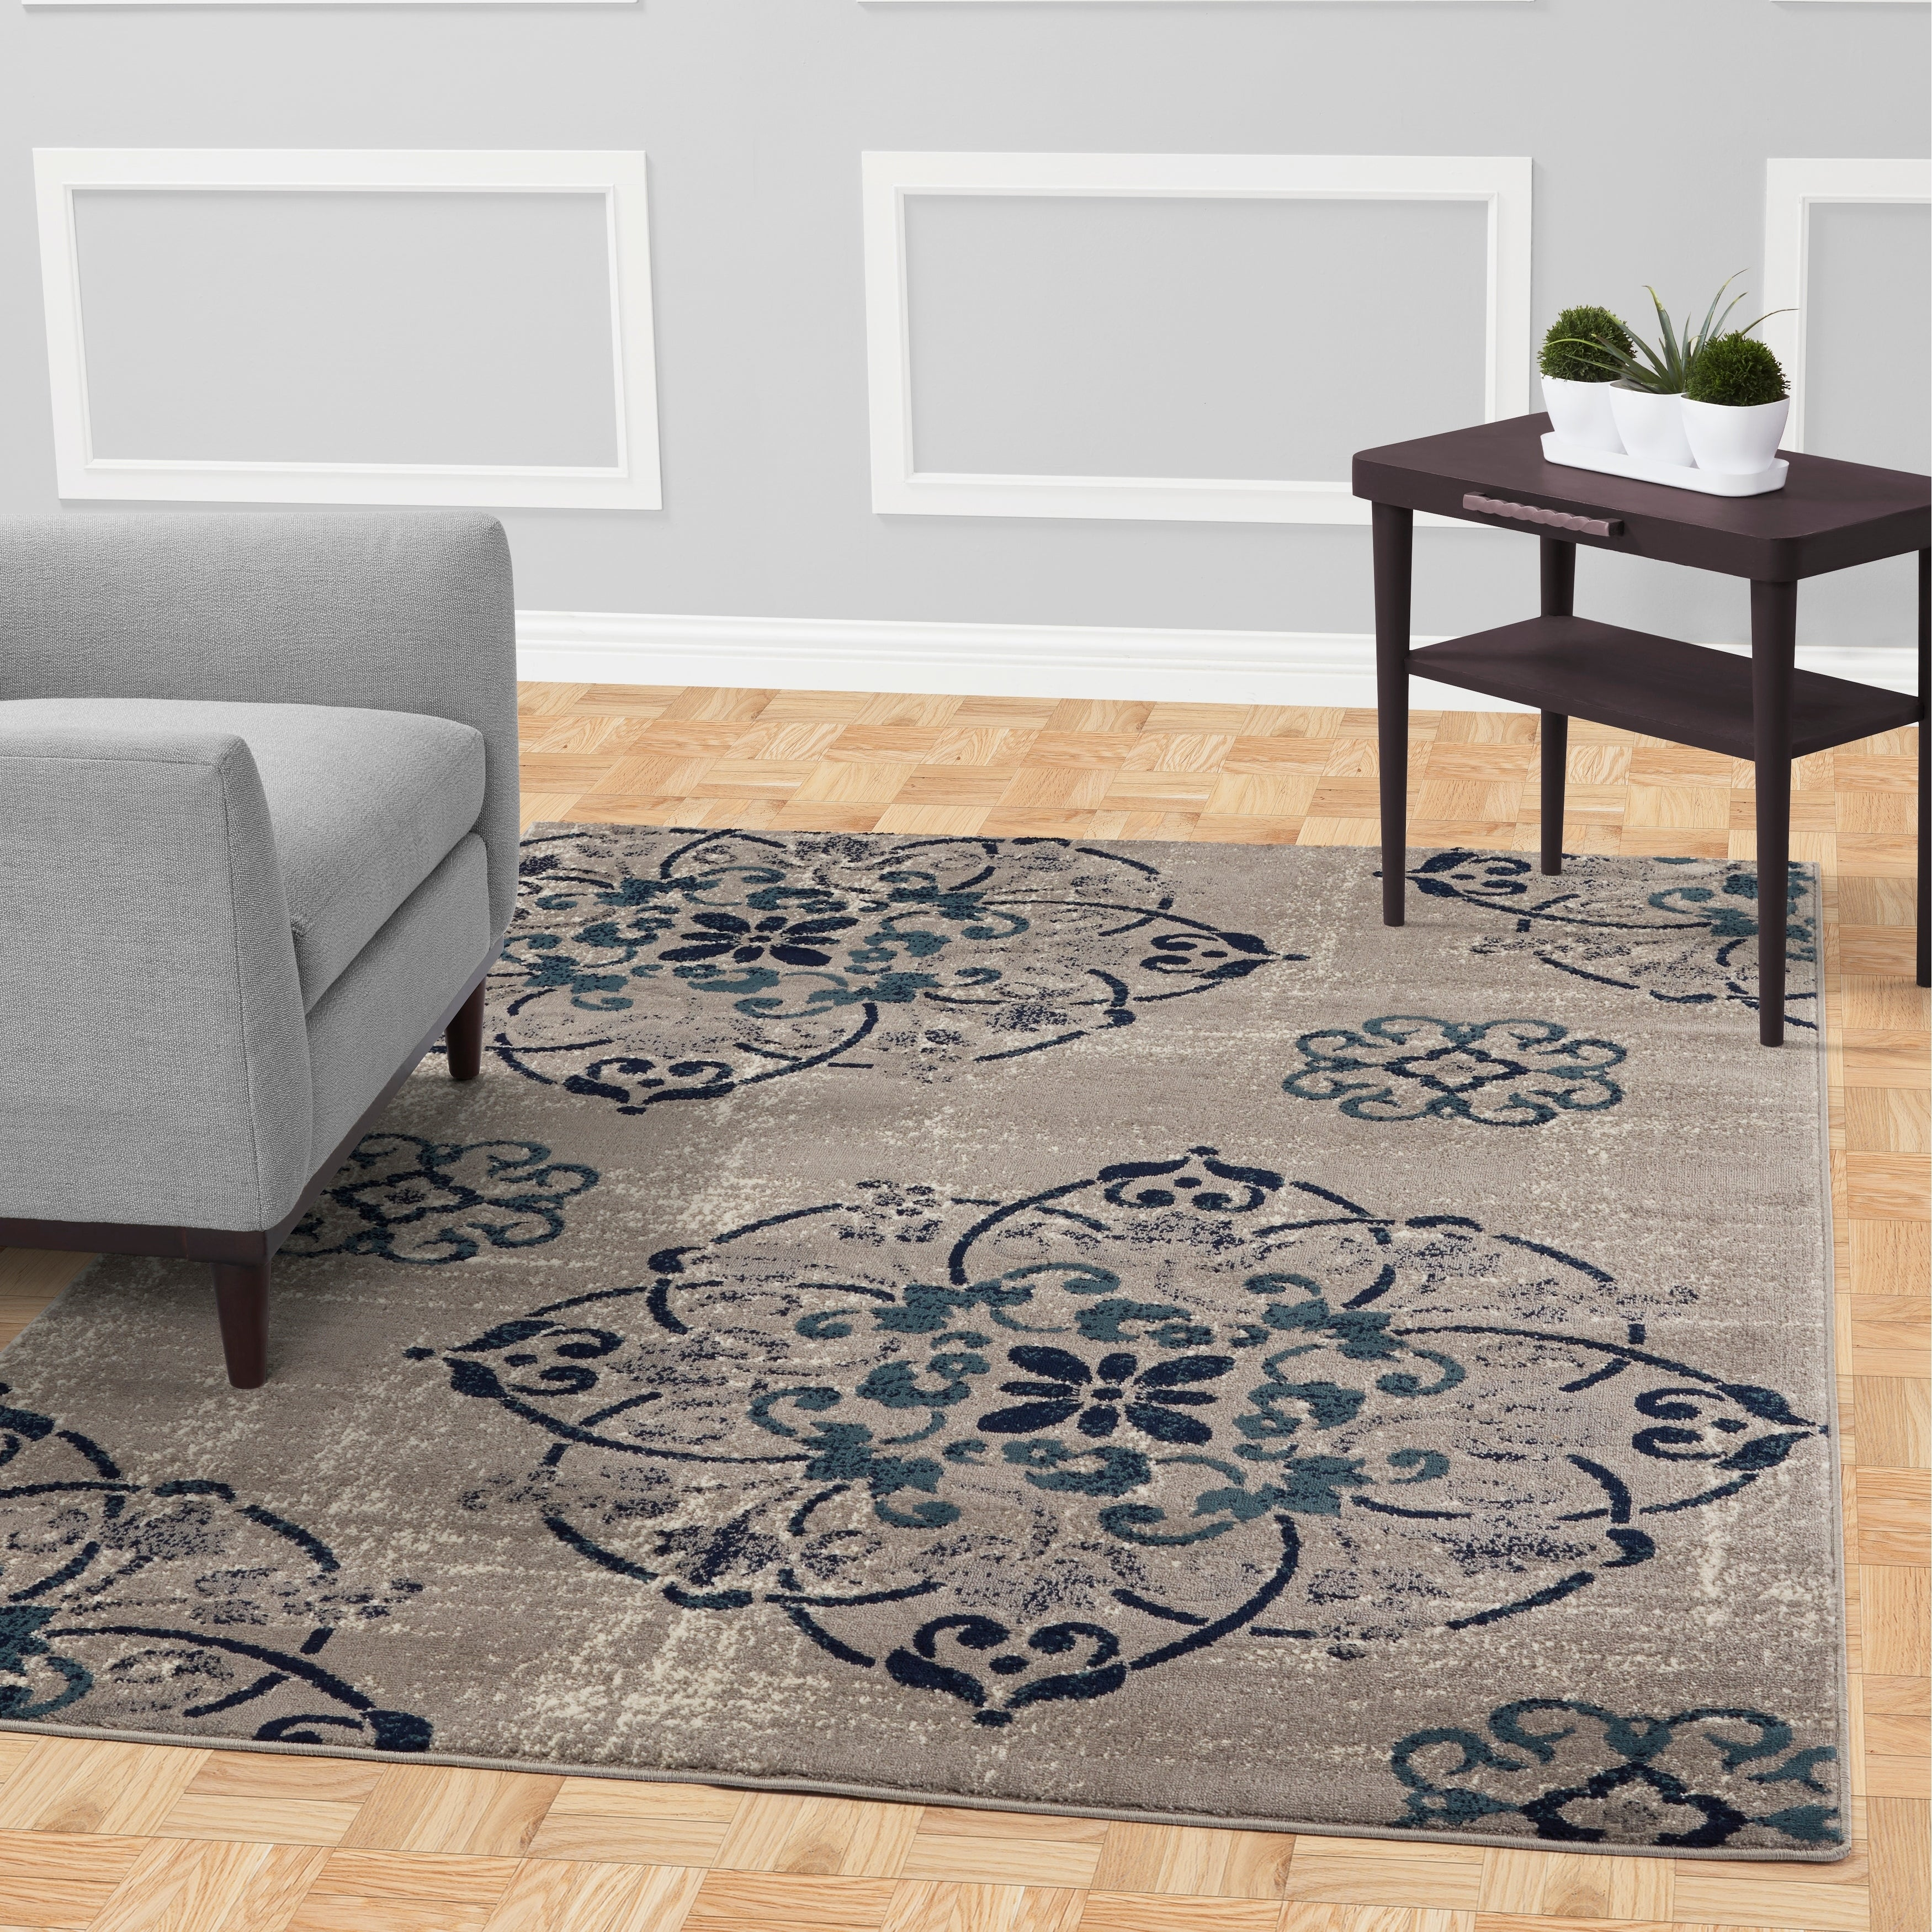 Shop jasmin collection floral medallion gray navy teal ivory area rug 67 x 93 free shipping today overstock 23035178